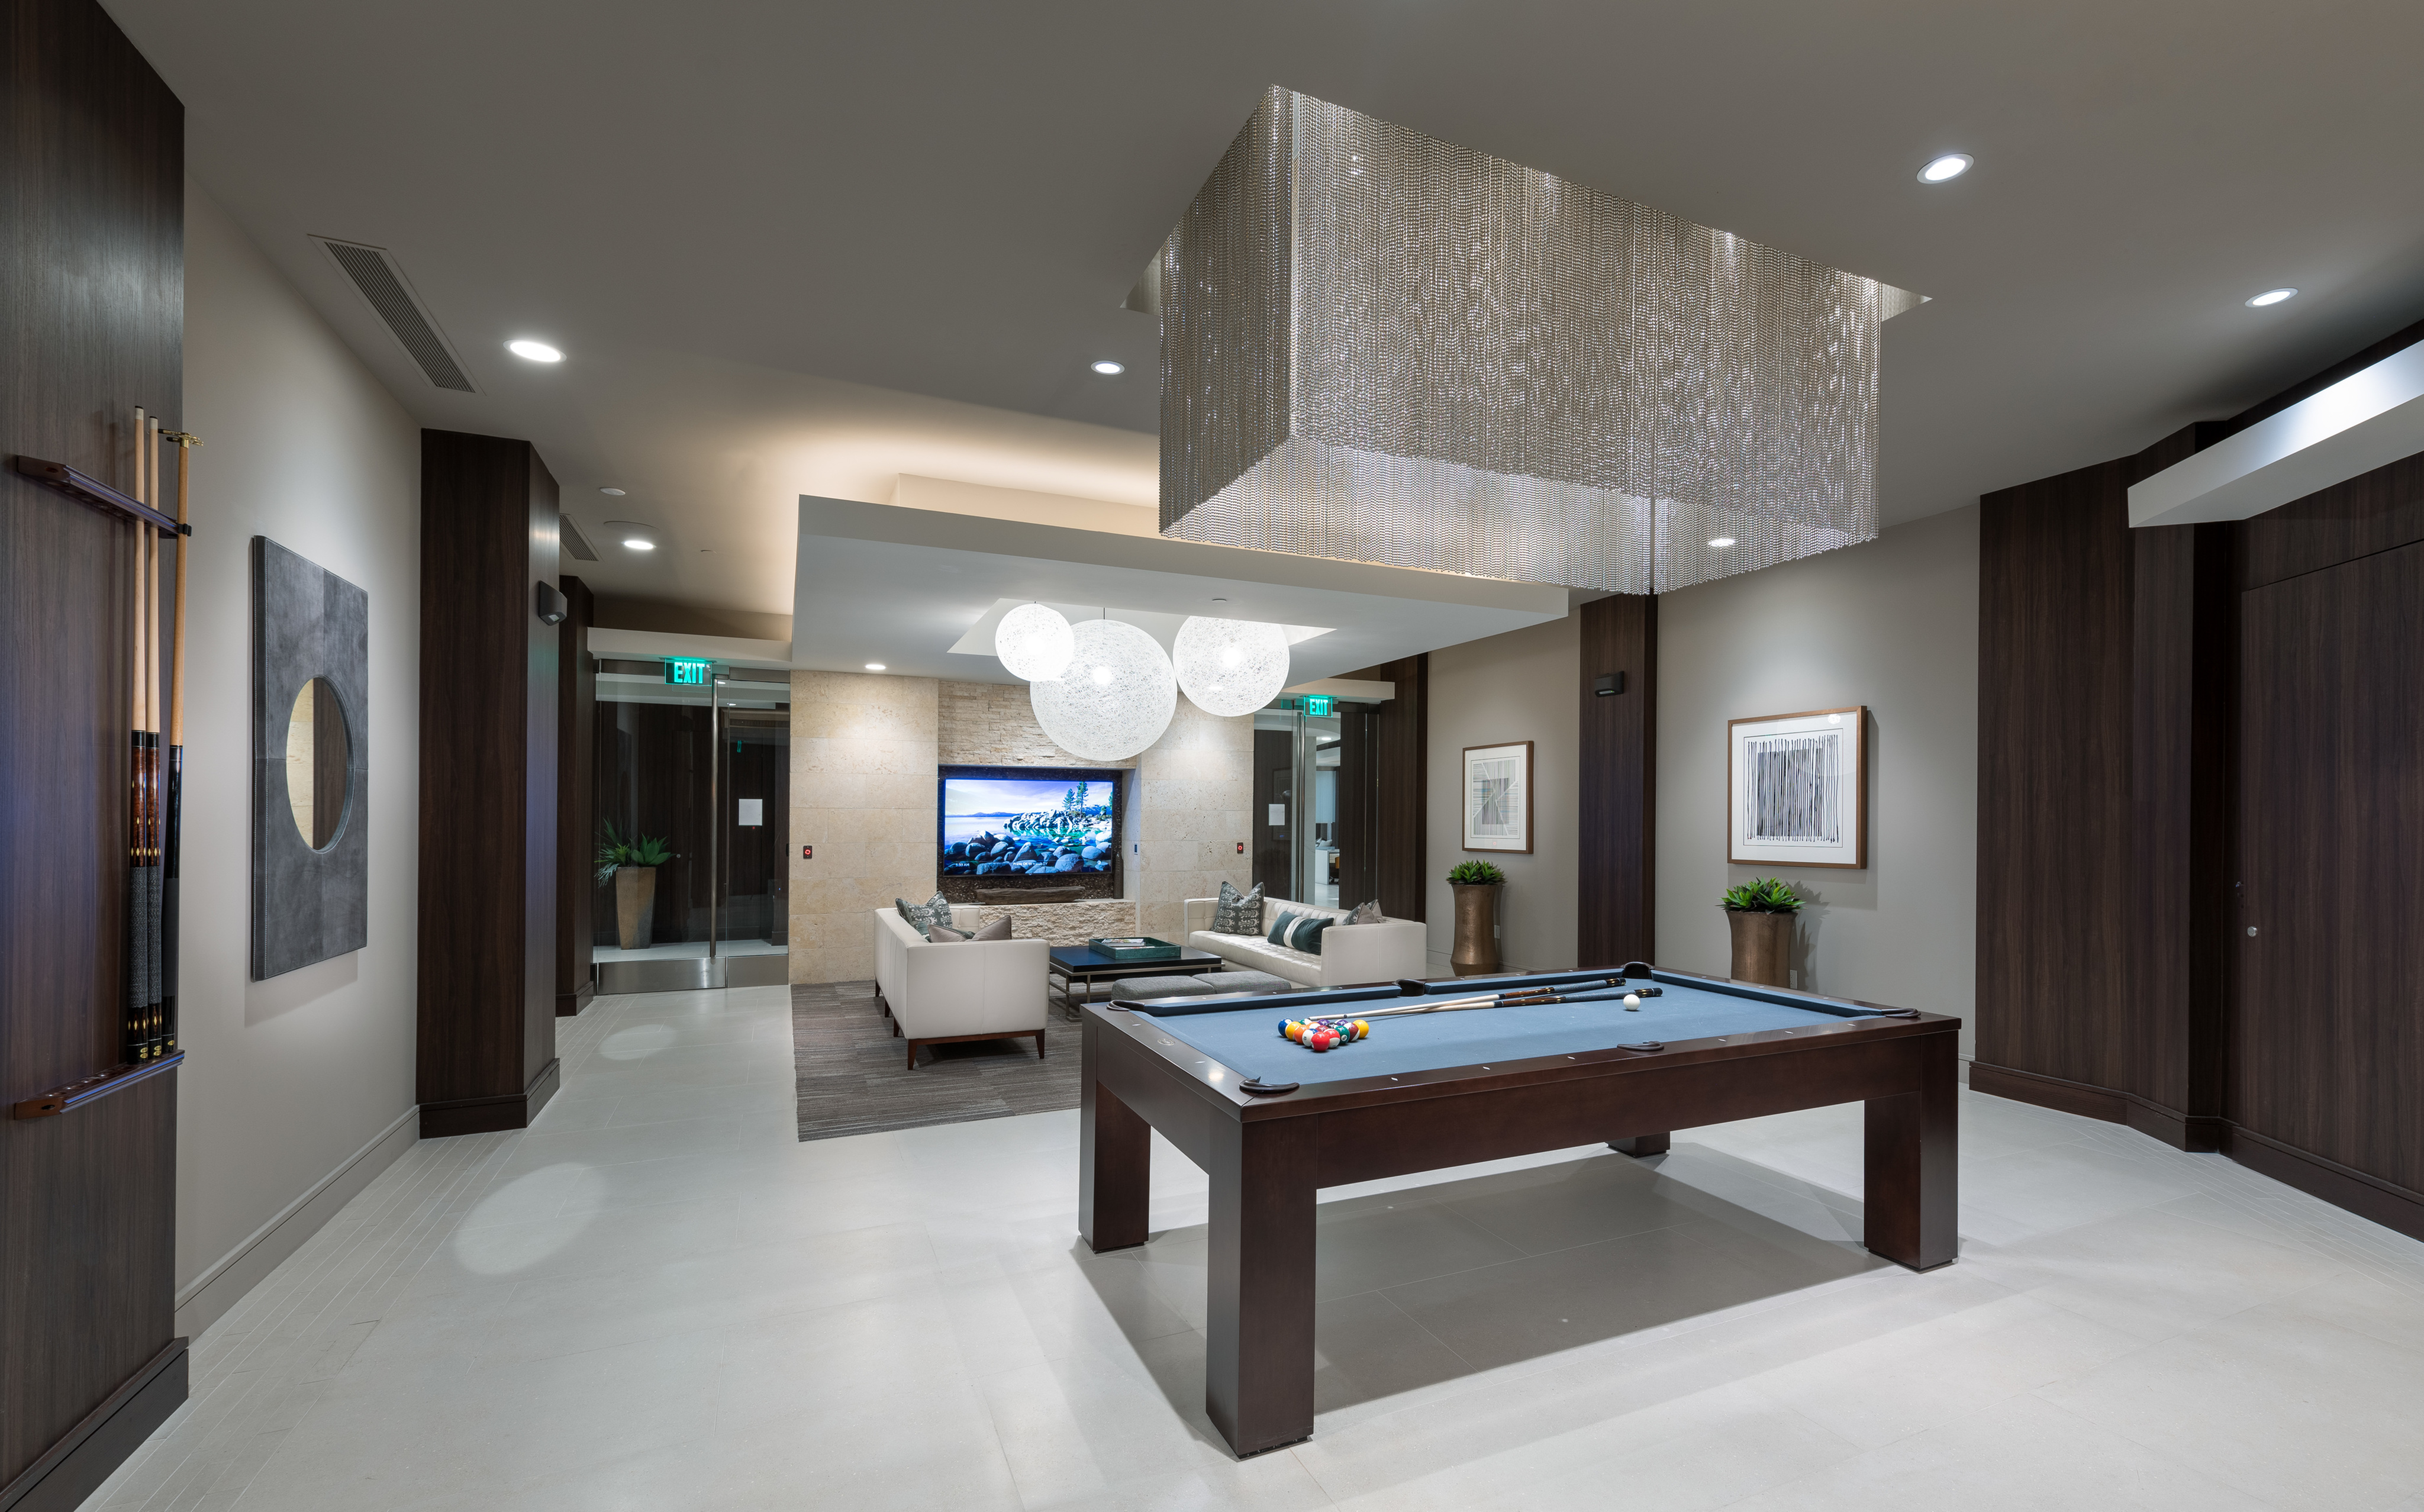 Resident lounge with billiards table and seating area at Hanover Broadway